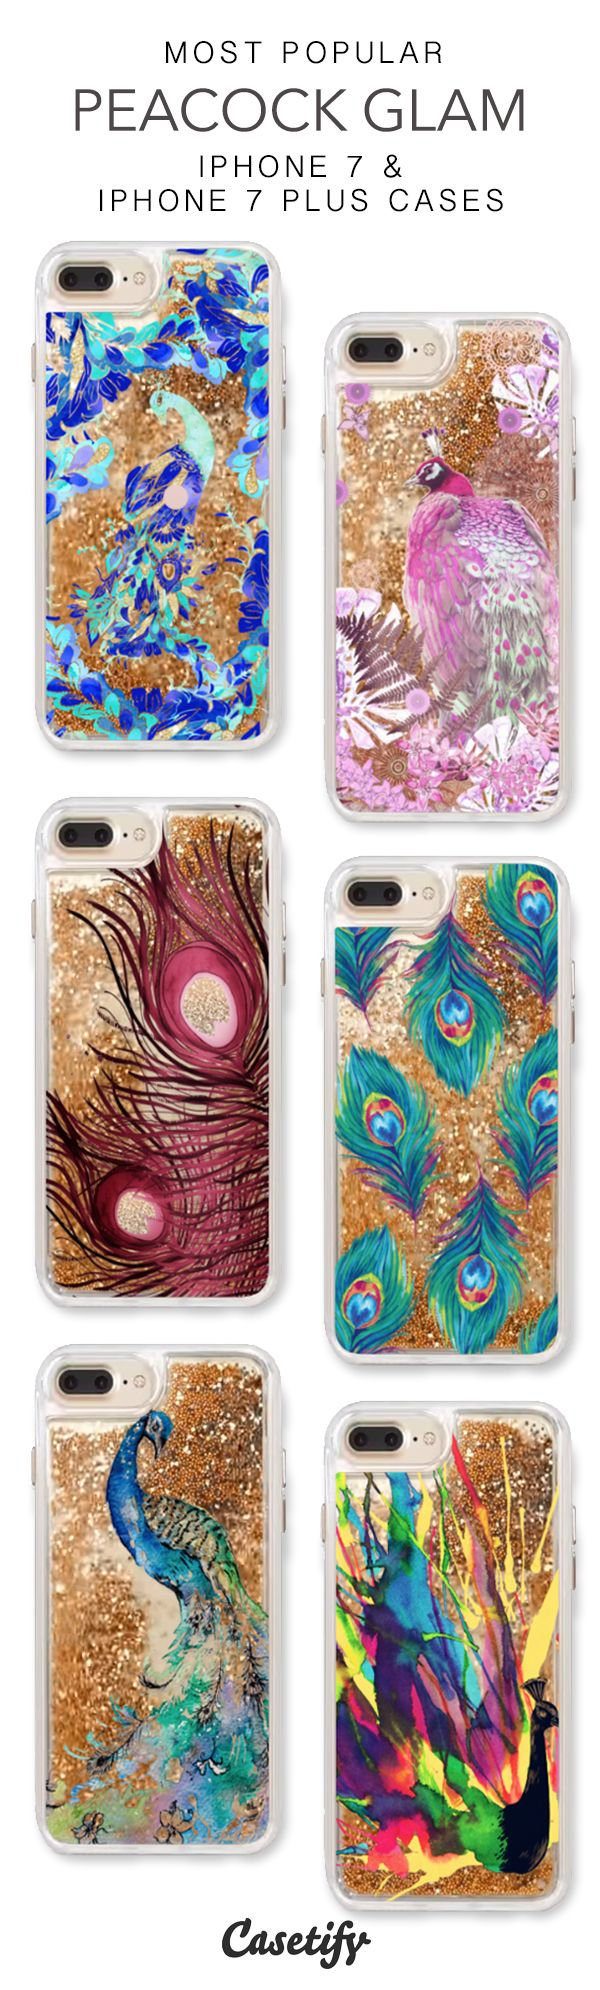 Most Popular Peacock Glam iPhone 7 Cases & iPhone 7 Plus Cases. More protective liquid glitter feather iPhone case here > https://www.casetify.com/en_US/collections/iphone-7-glitter-cases#/?vc=YBgdO4Foep